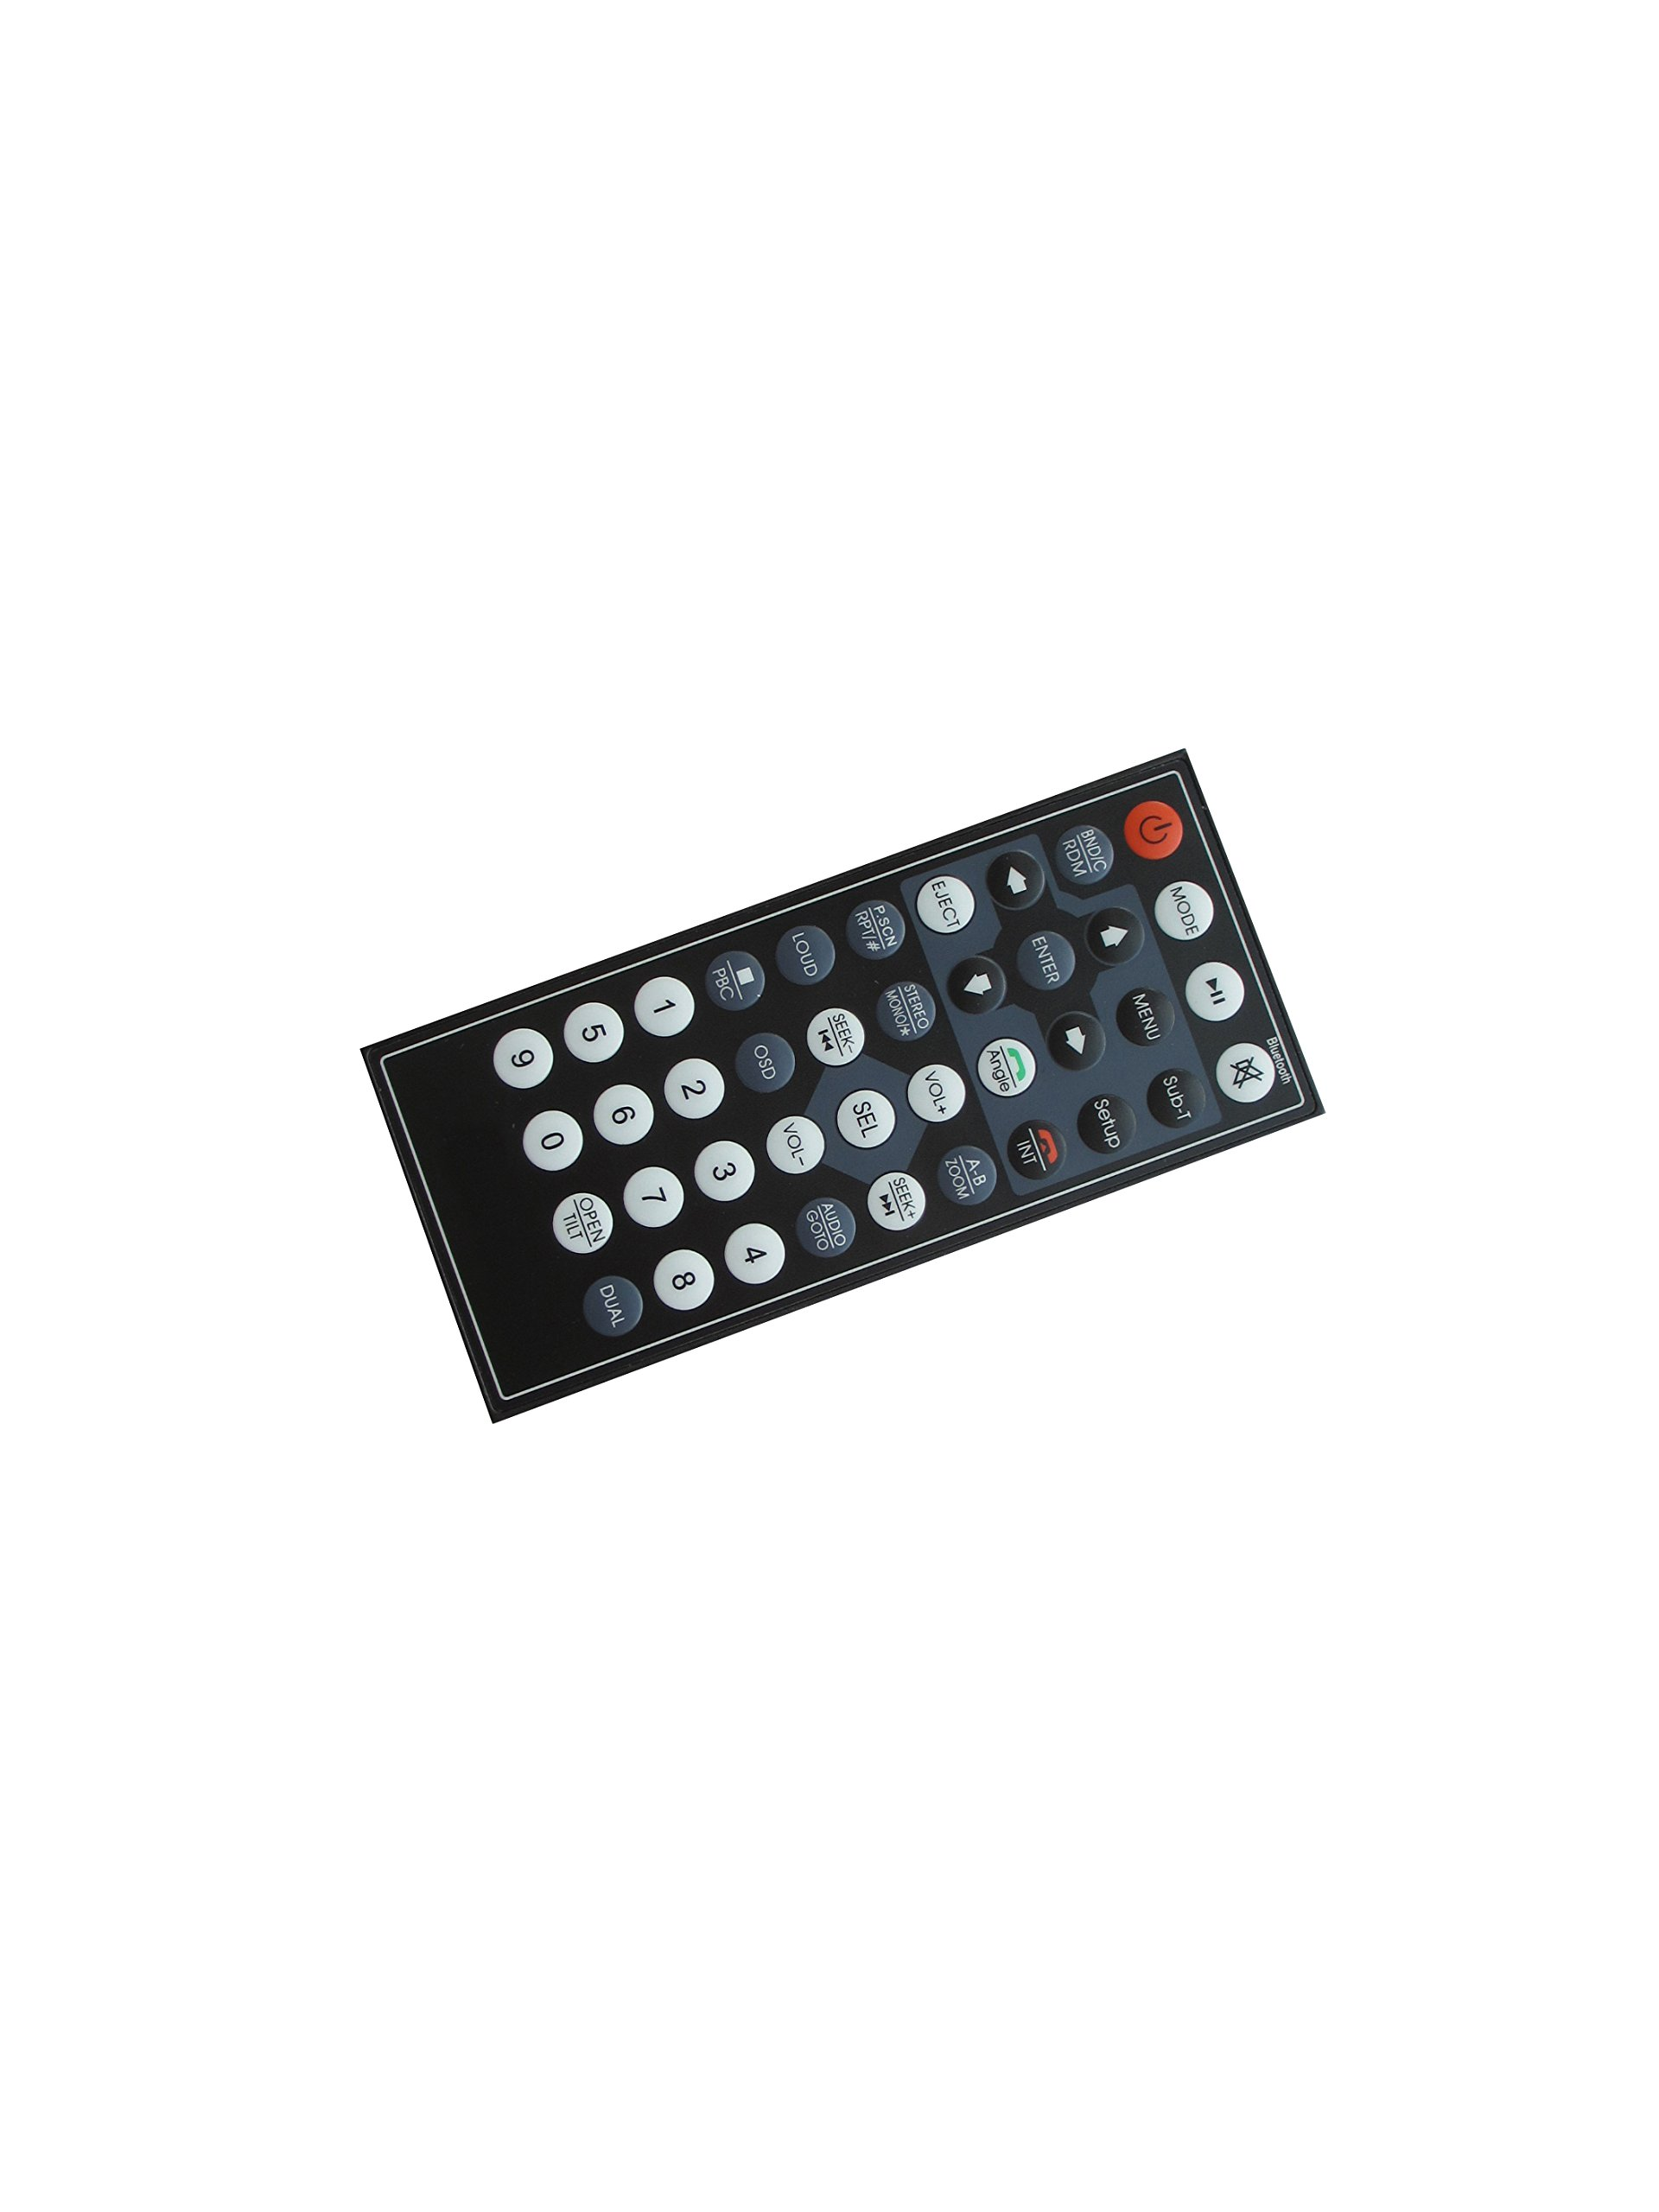 General Remote Control For Farenheit TI-620HB TI-710BT BTID-893BT TI-712T TI-620HB TI-103B TI-710B TI-712B TI-720HB TI-930B TI-650B TI-651B DVD CD USB SD AM FM MP3 Player Bluetooth Car Stereo Receiver